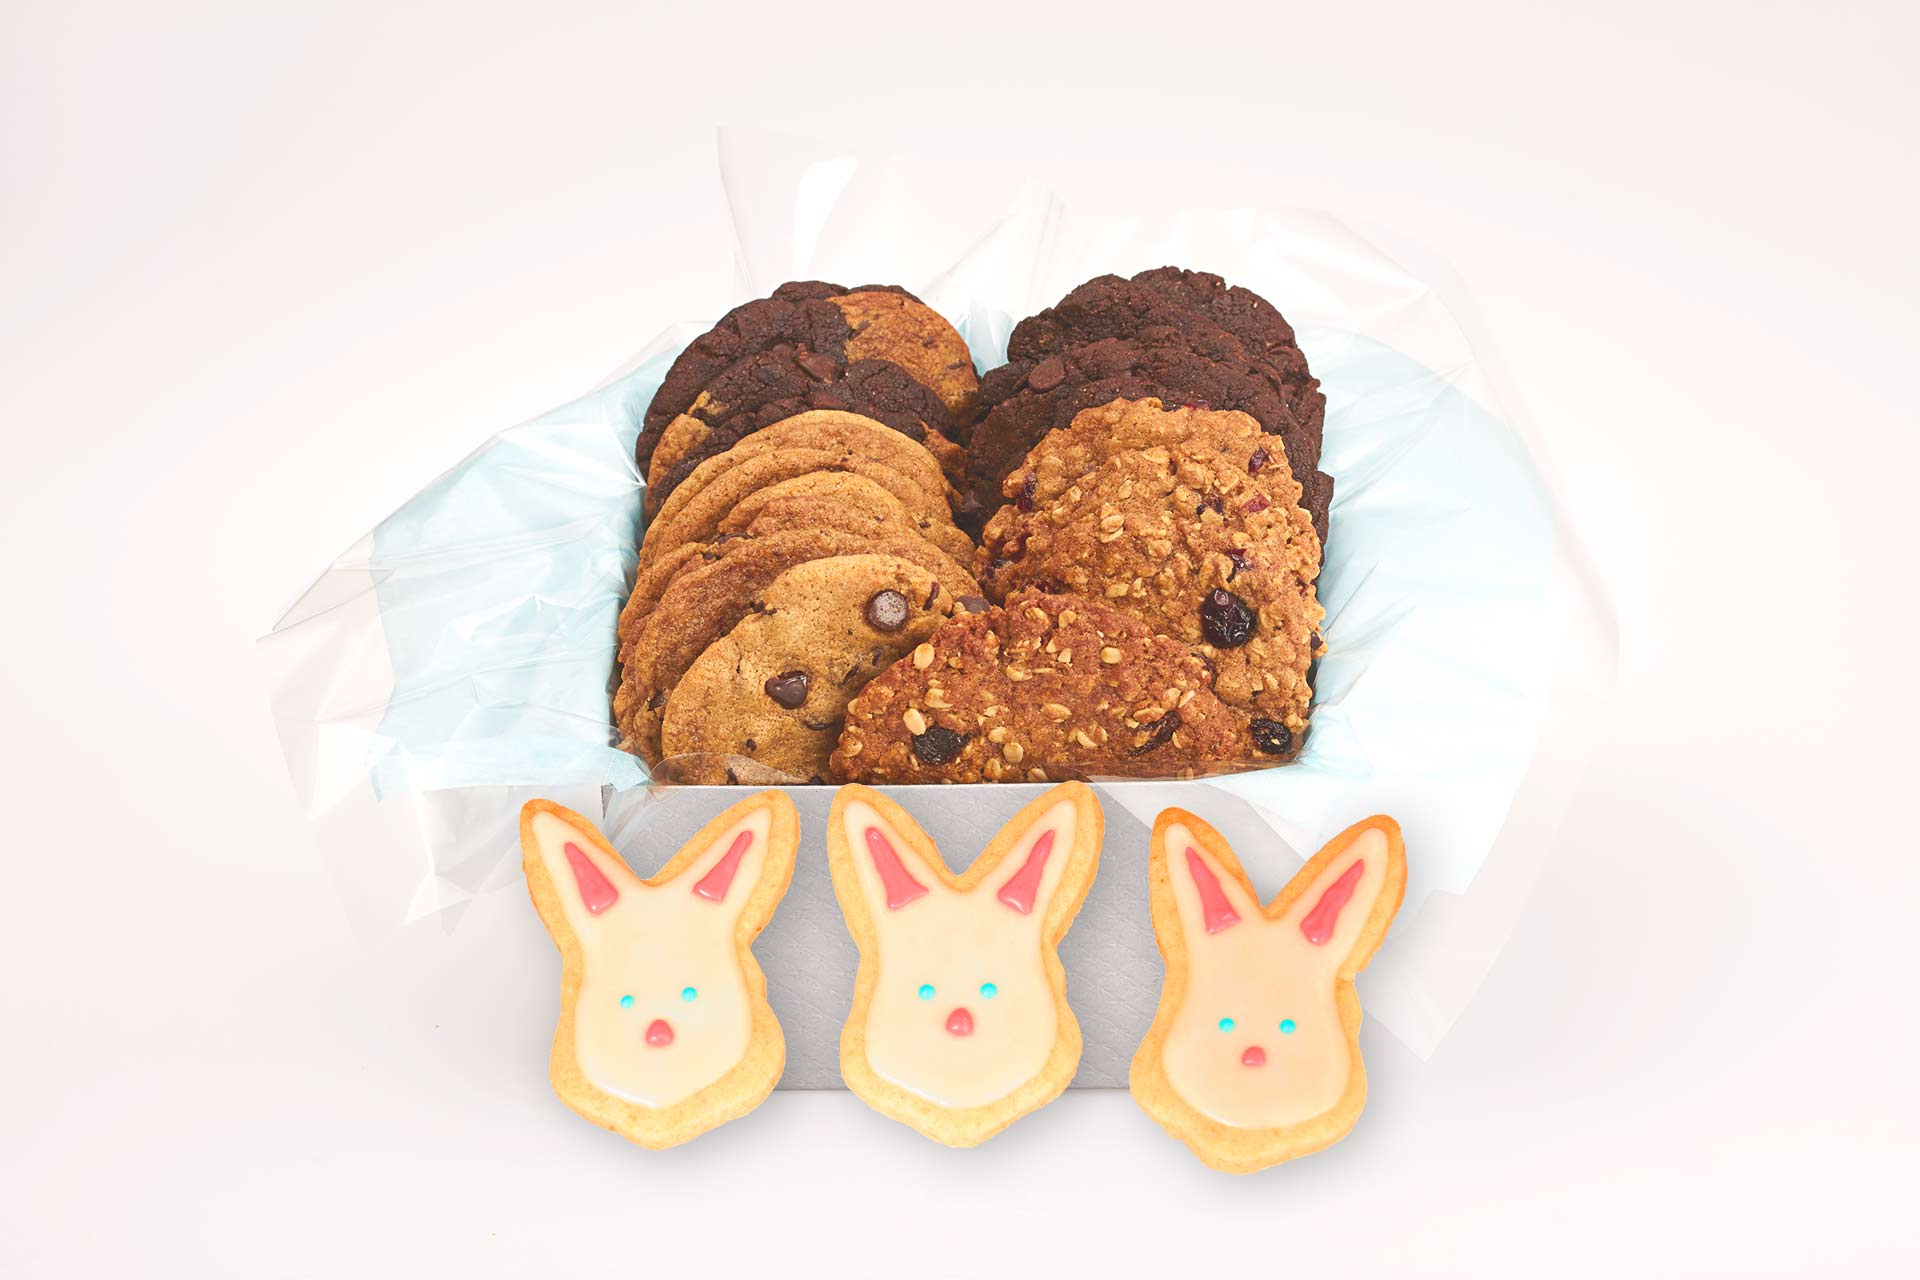 Easter bunny cookie gifts better cookies canada gift boxes with easter bunny sugar cookies for delivery in canada negle Image collections